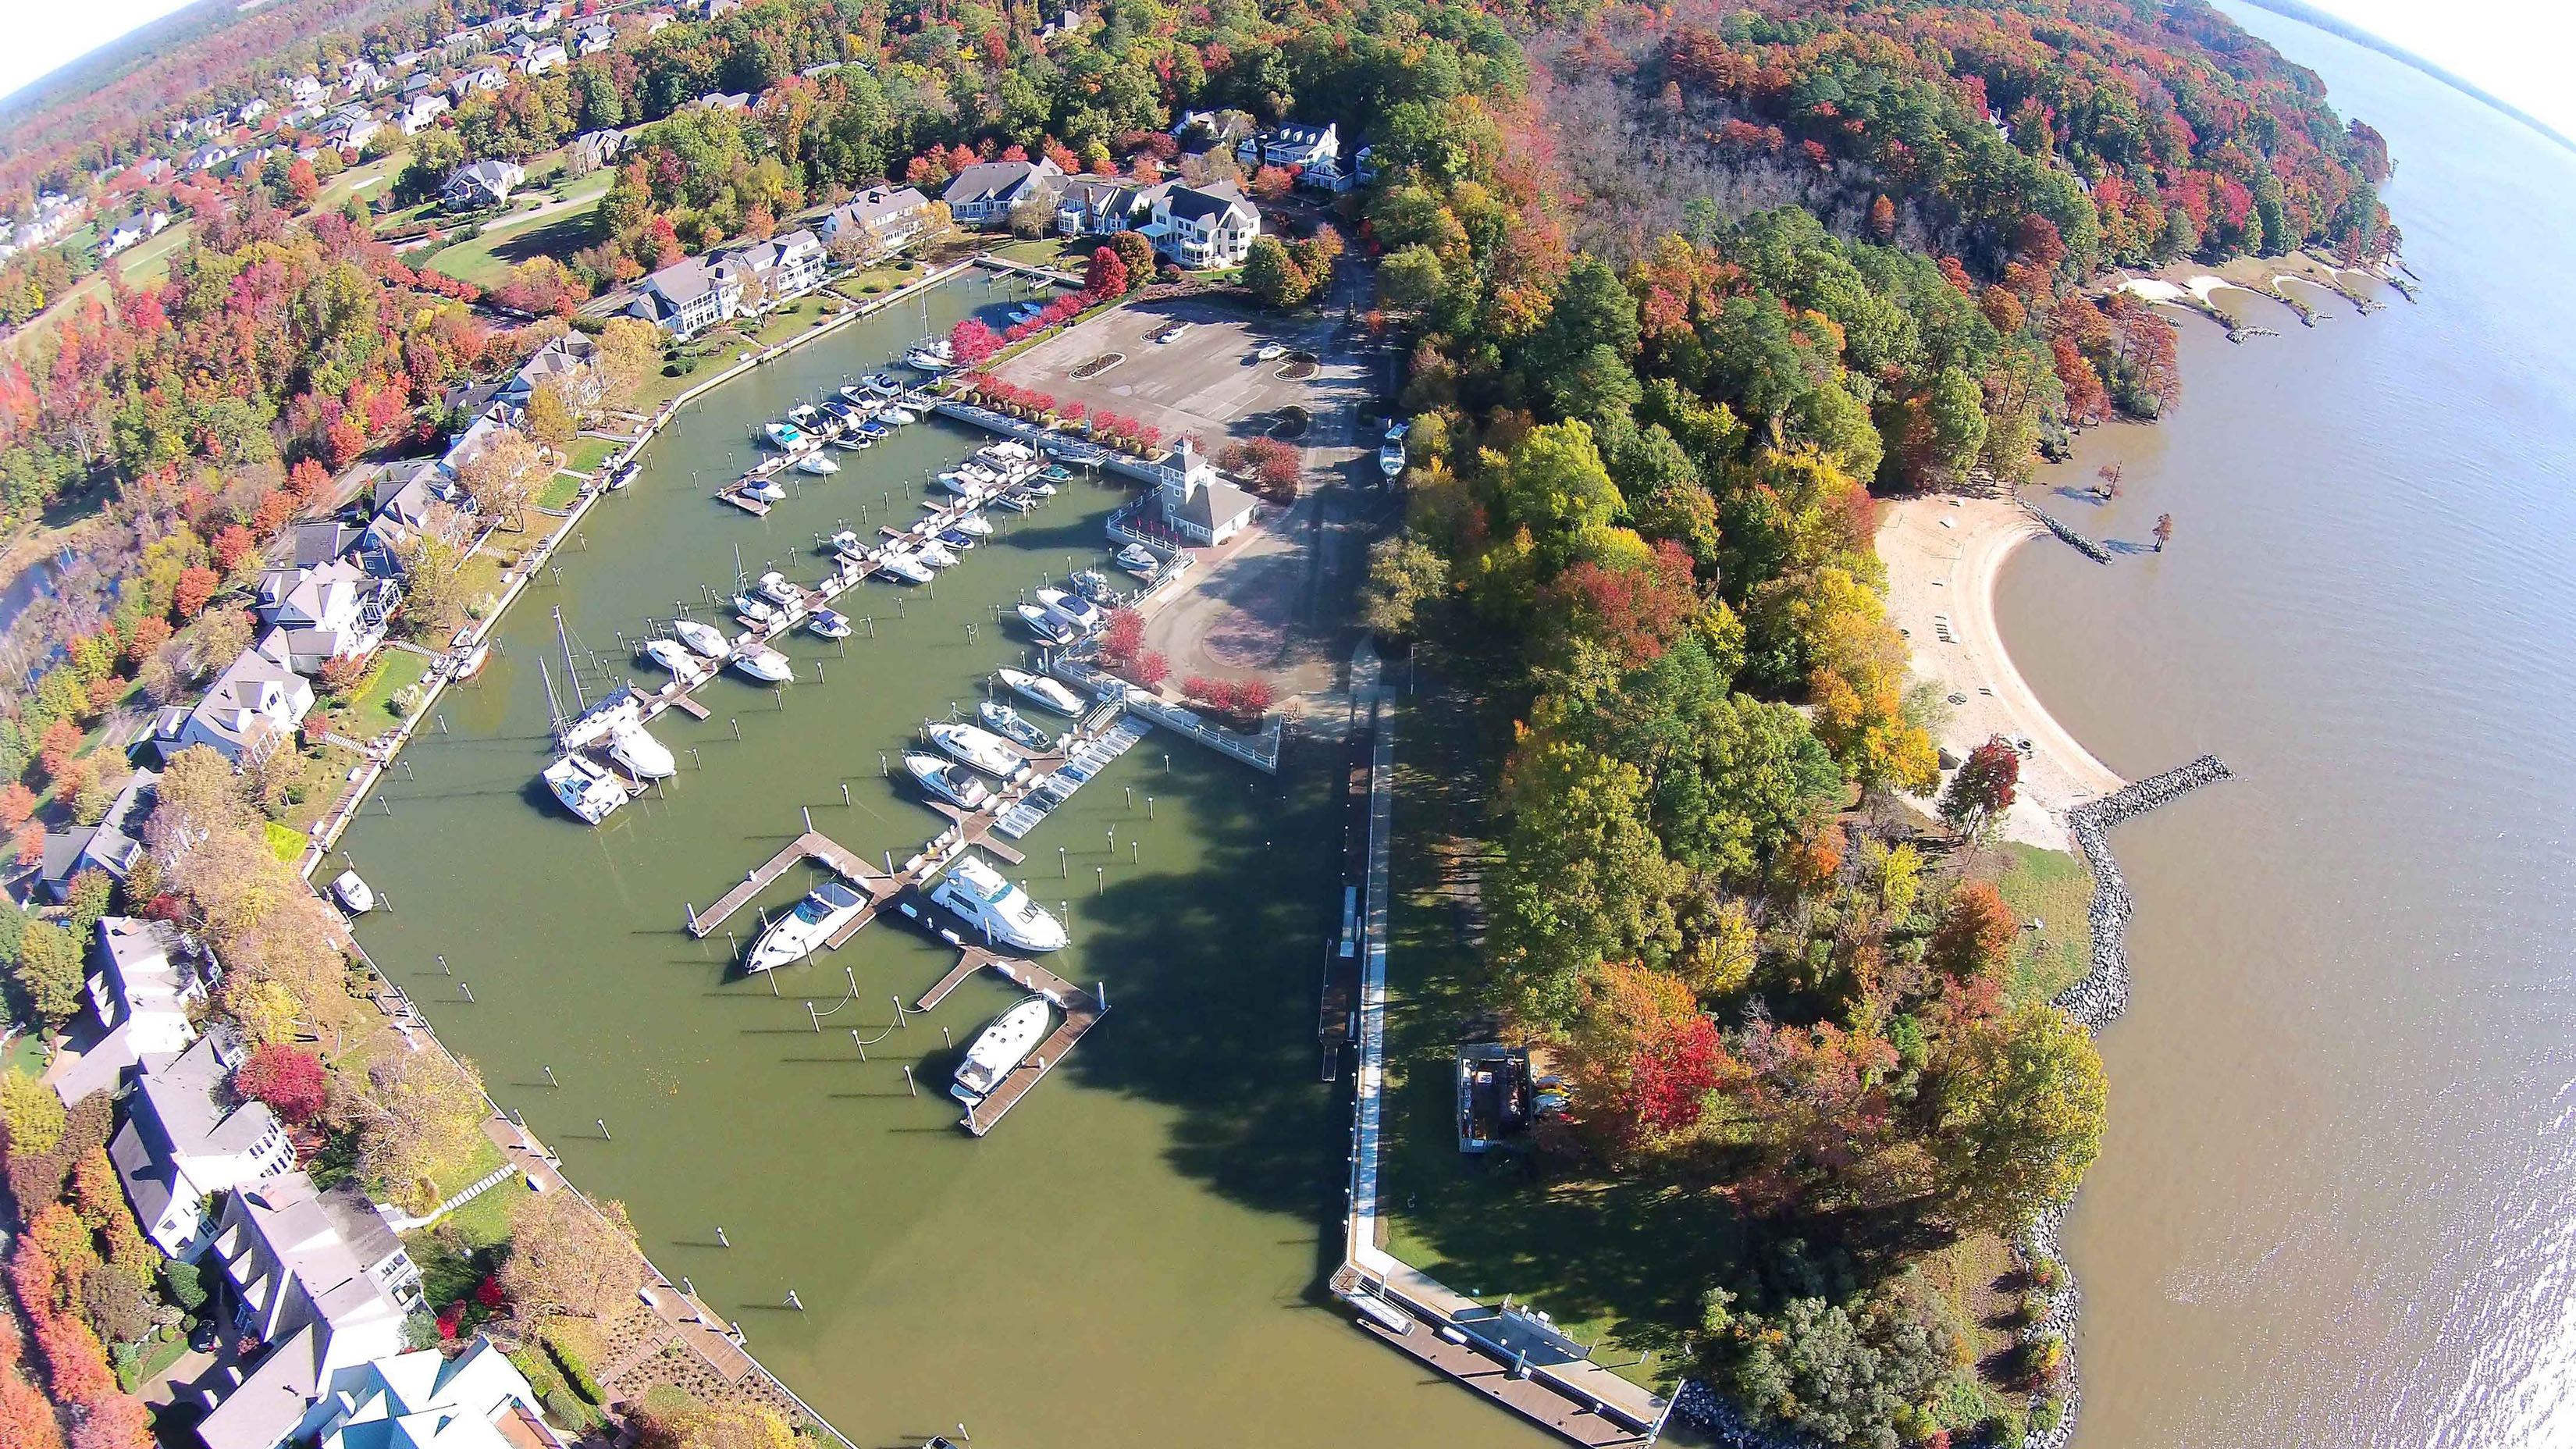 Governors Land Marina Aerial